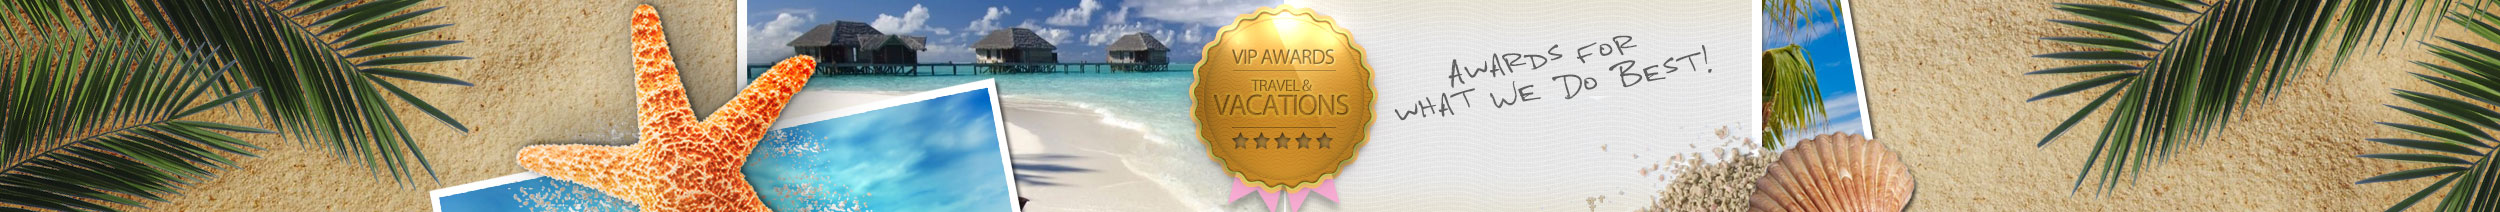 "VIP President Featured in ""Travel Agents Prove Their Value During Hurricane Season"""